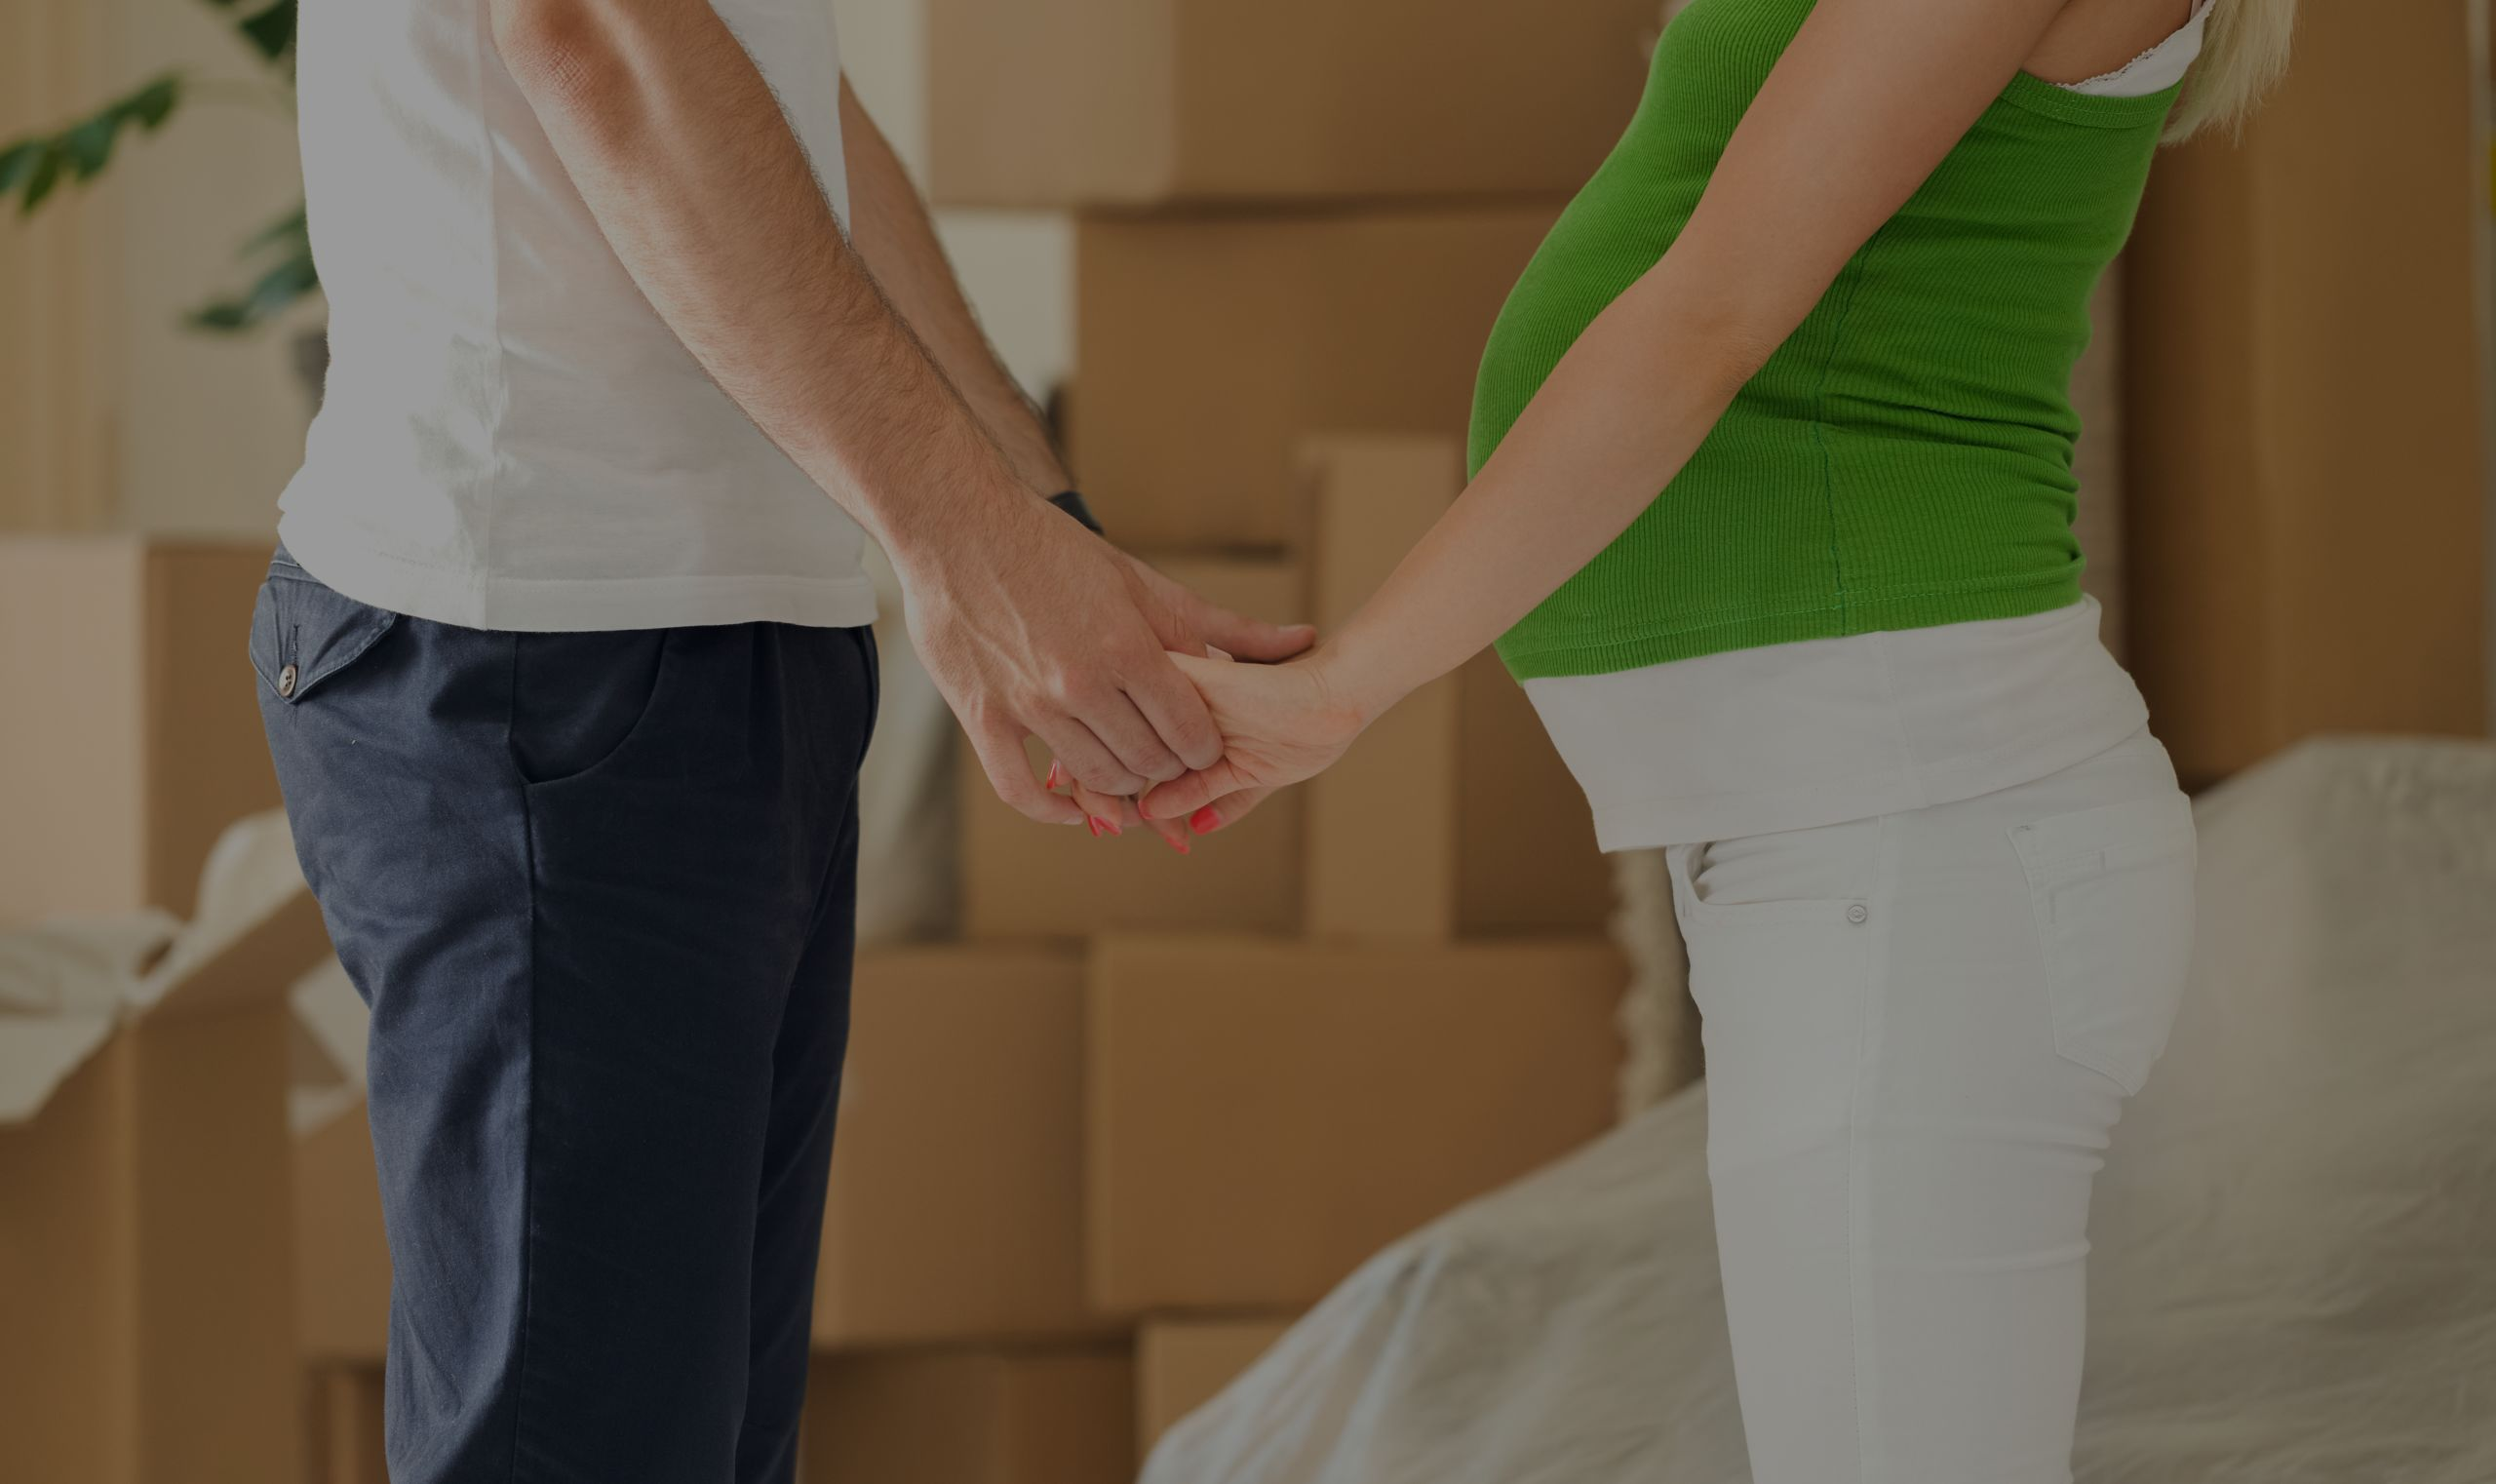 Tips on How to Buy a Home while Expecting